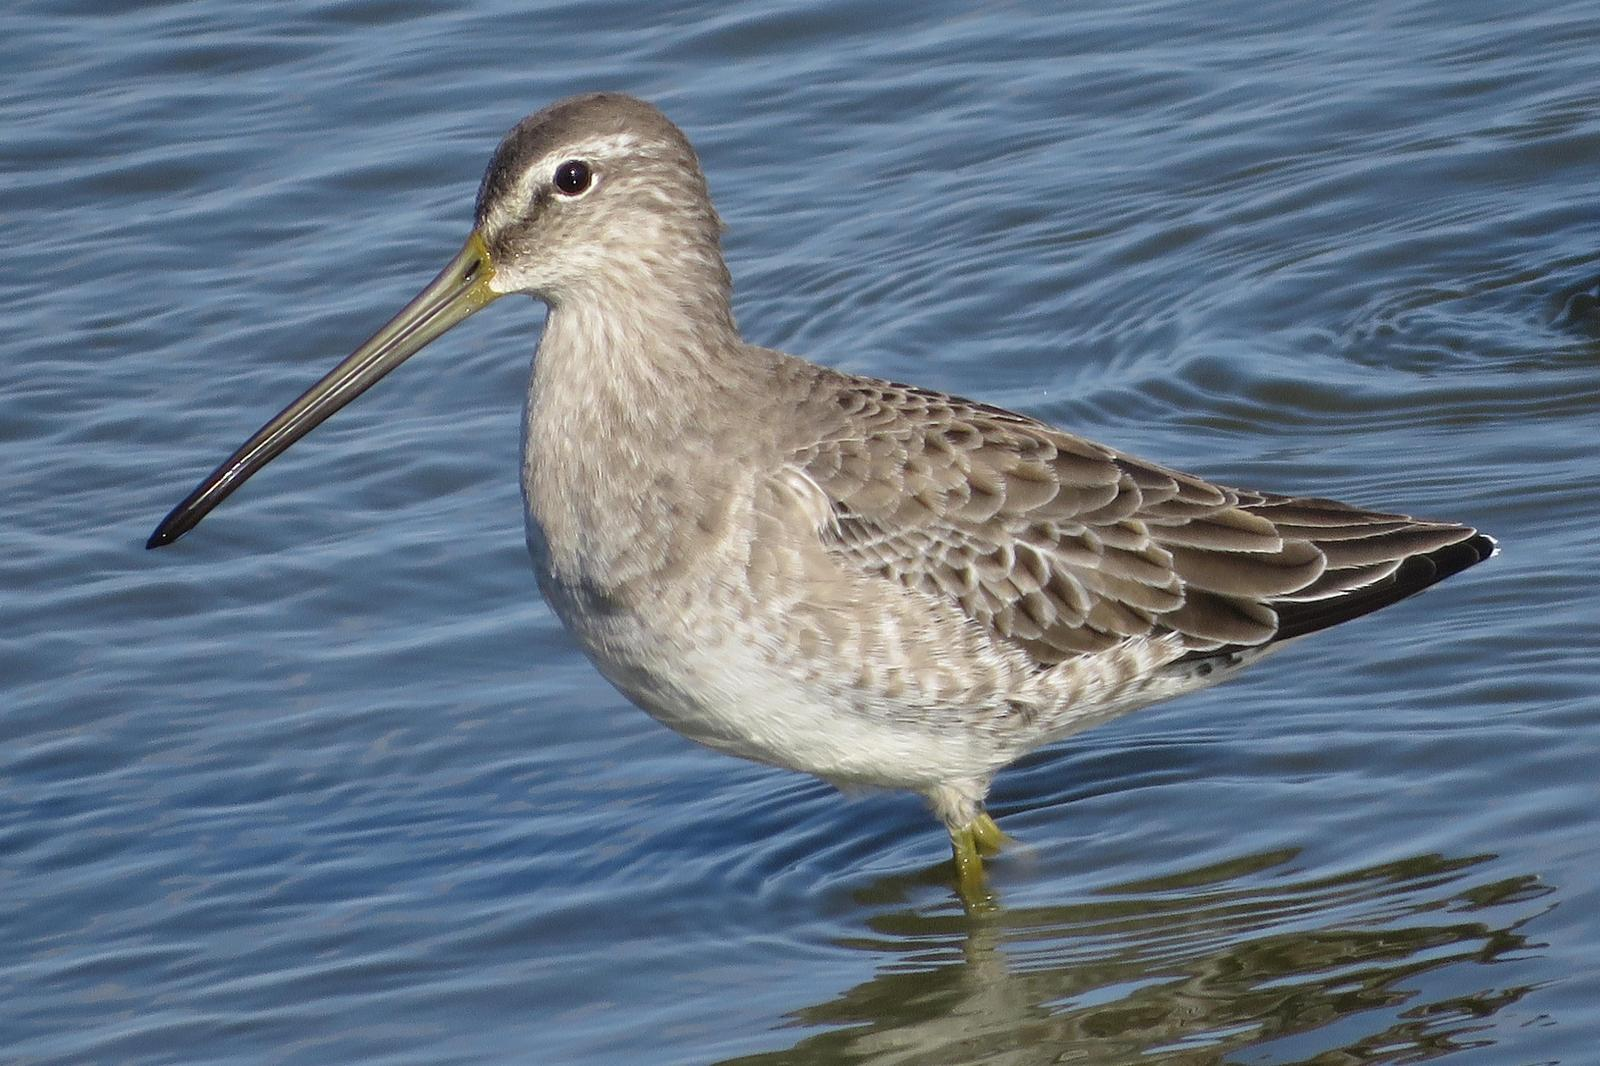 Long-billed Dowitcher Photo by Bob Neugebauer